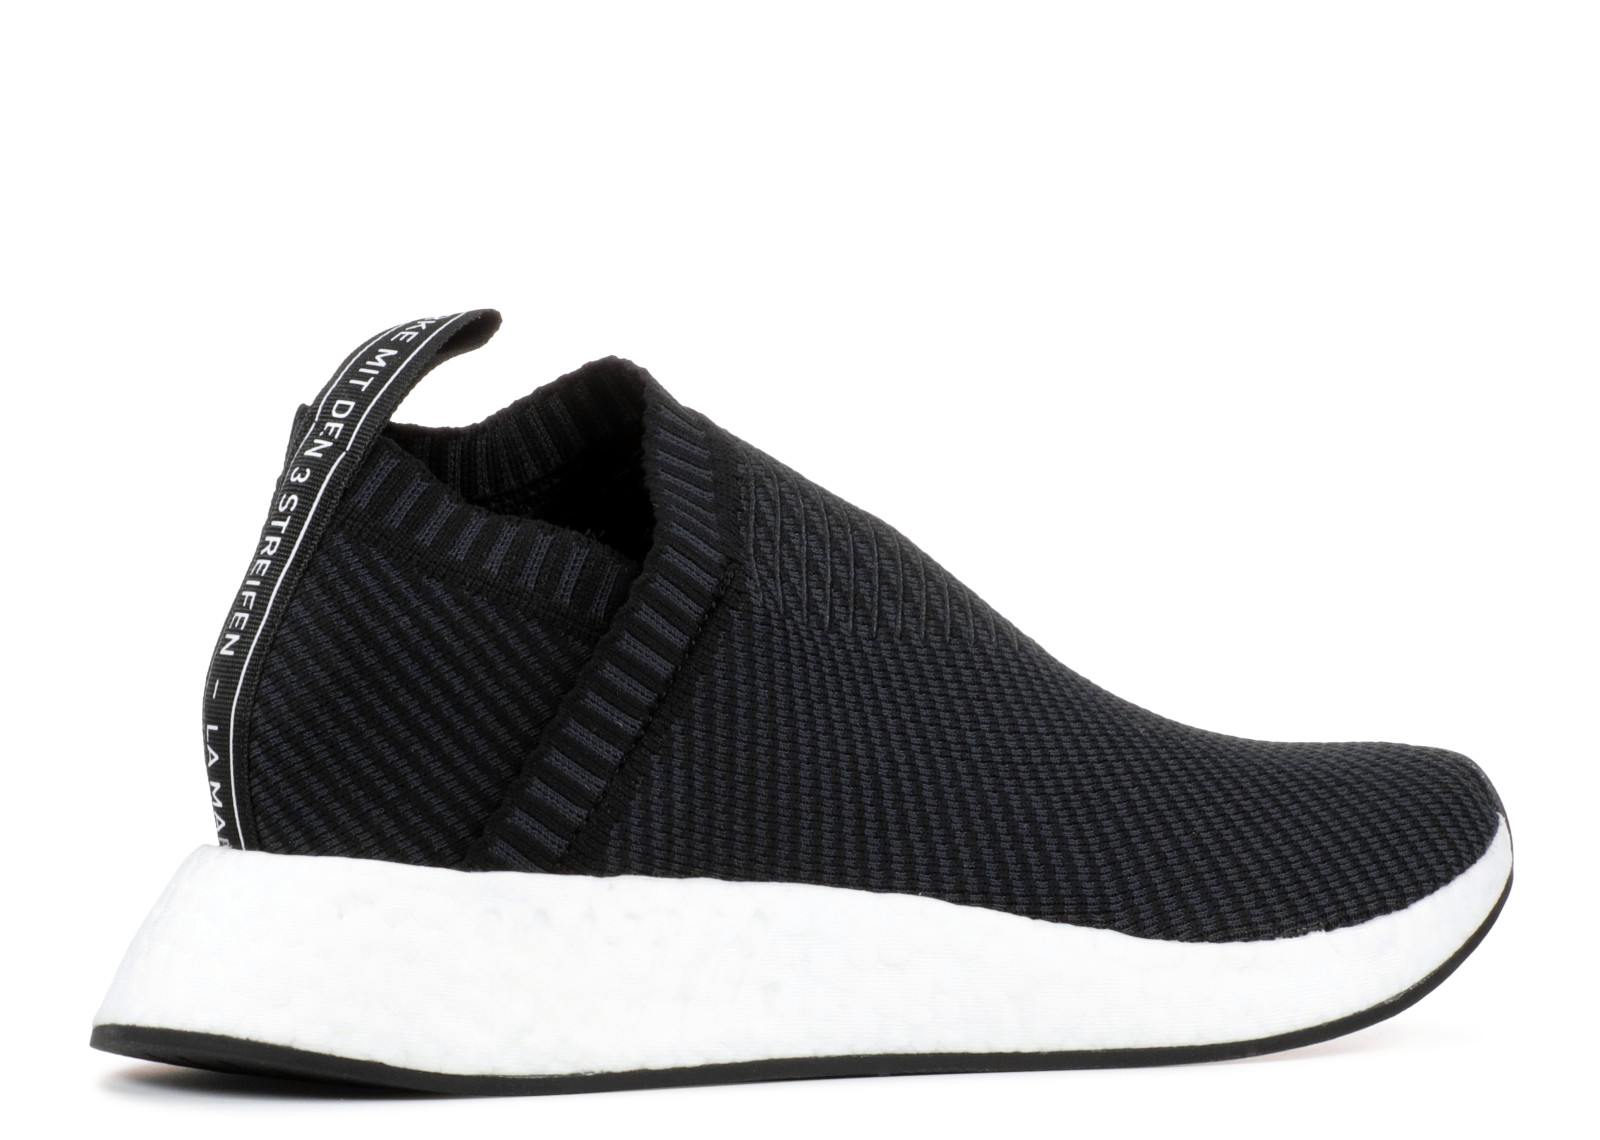 78d587cea5898 adidas NMD CS2 Core Black Red Solid - 3